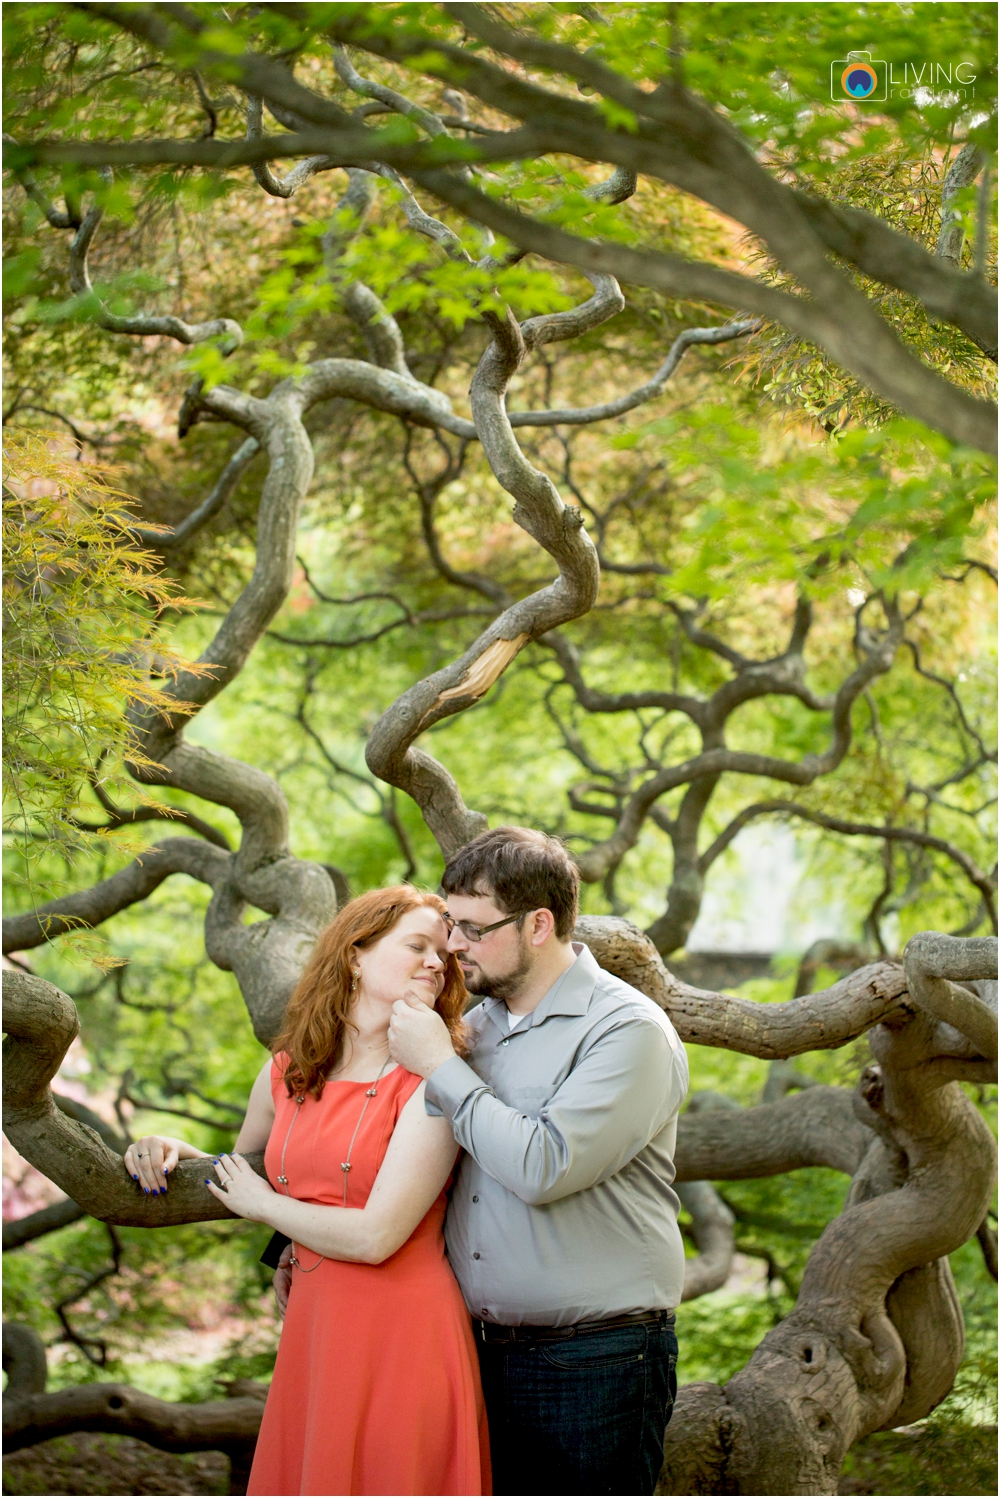 miriam-michael-engaged-clyburn-arboretum-engagement-session-baltimore-outdoor-flowers-living-radiant-photography-maggie-patrick-nolan_0031.jpg